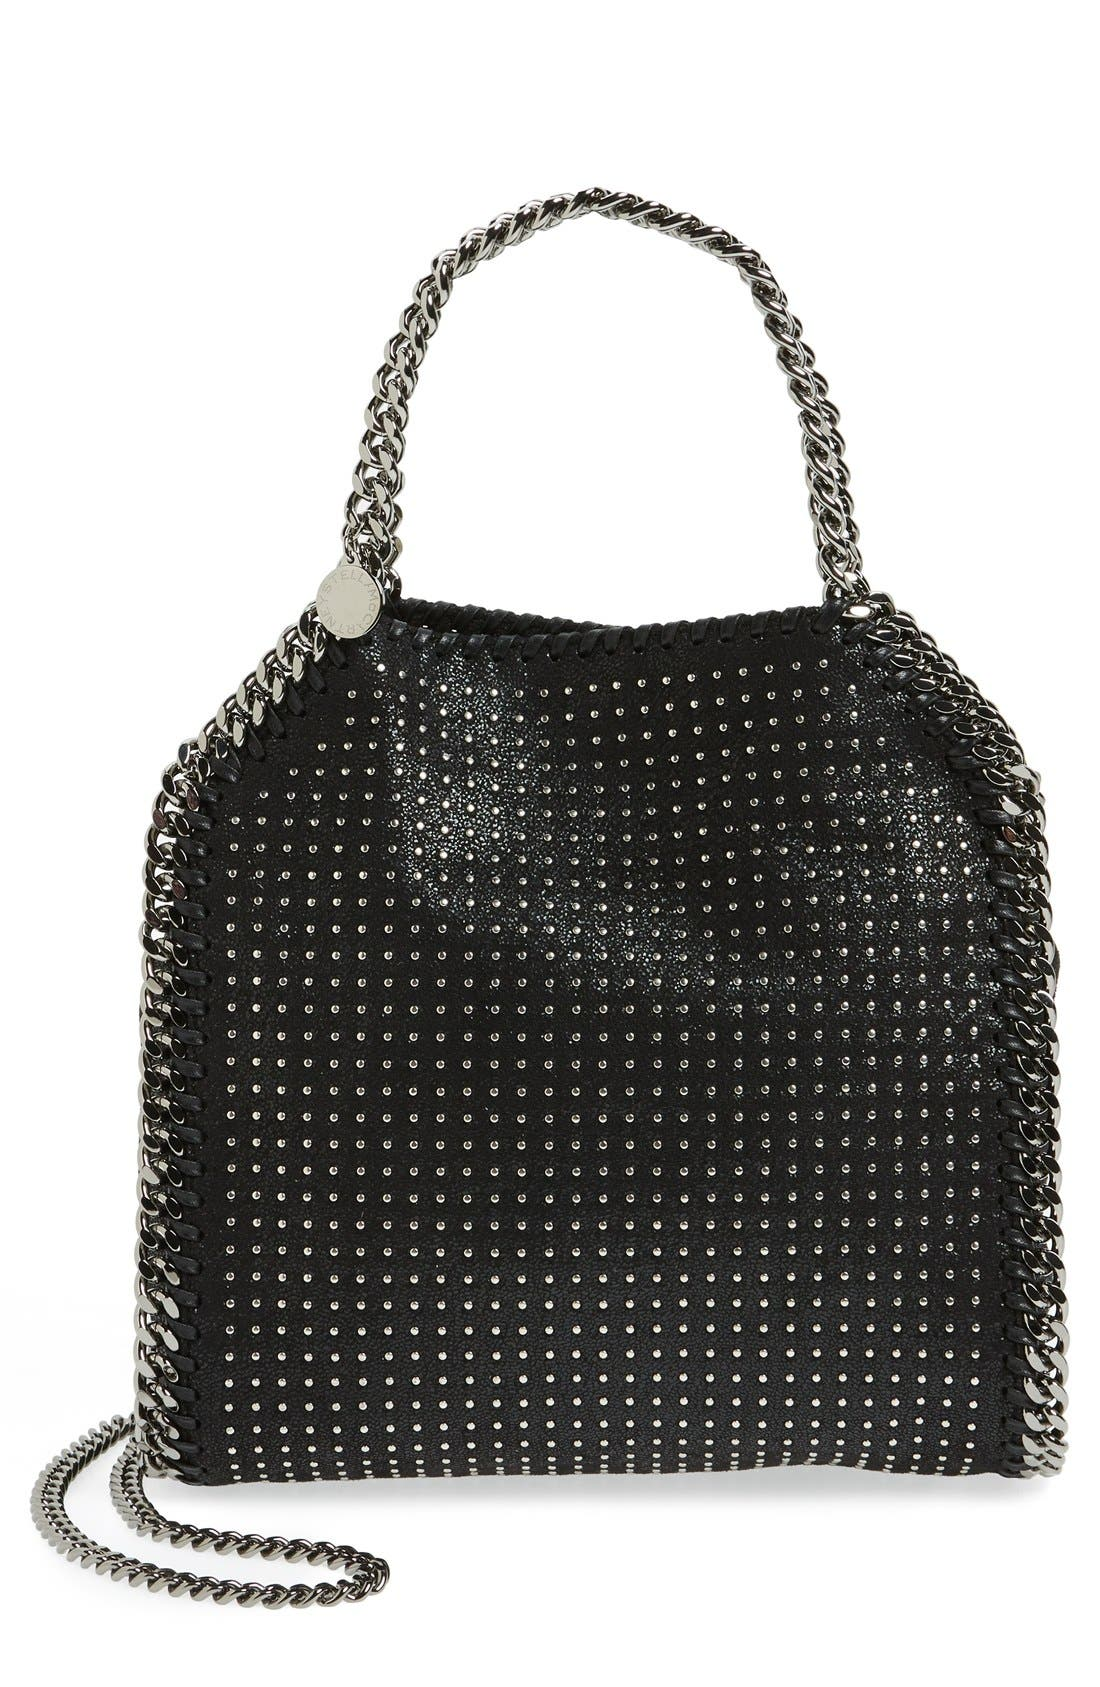 Alternate Image 1 Selected - Stella McCartney 'Mini Falabella' Studded Faux Leather Tote